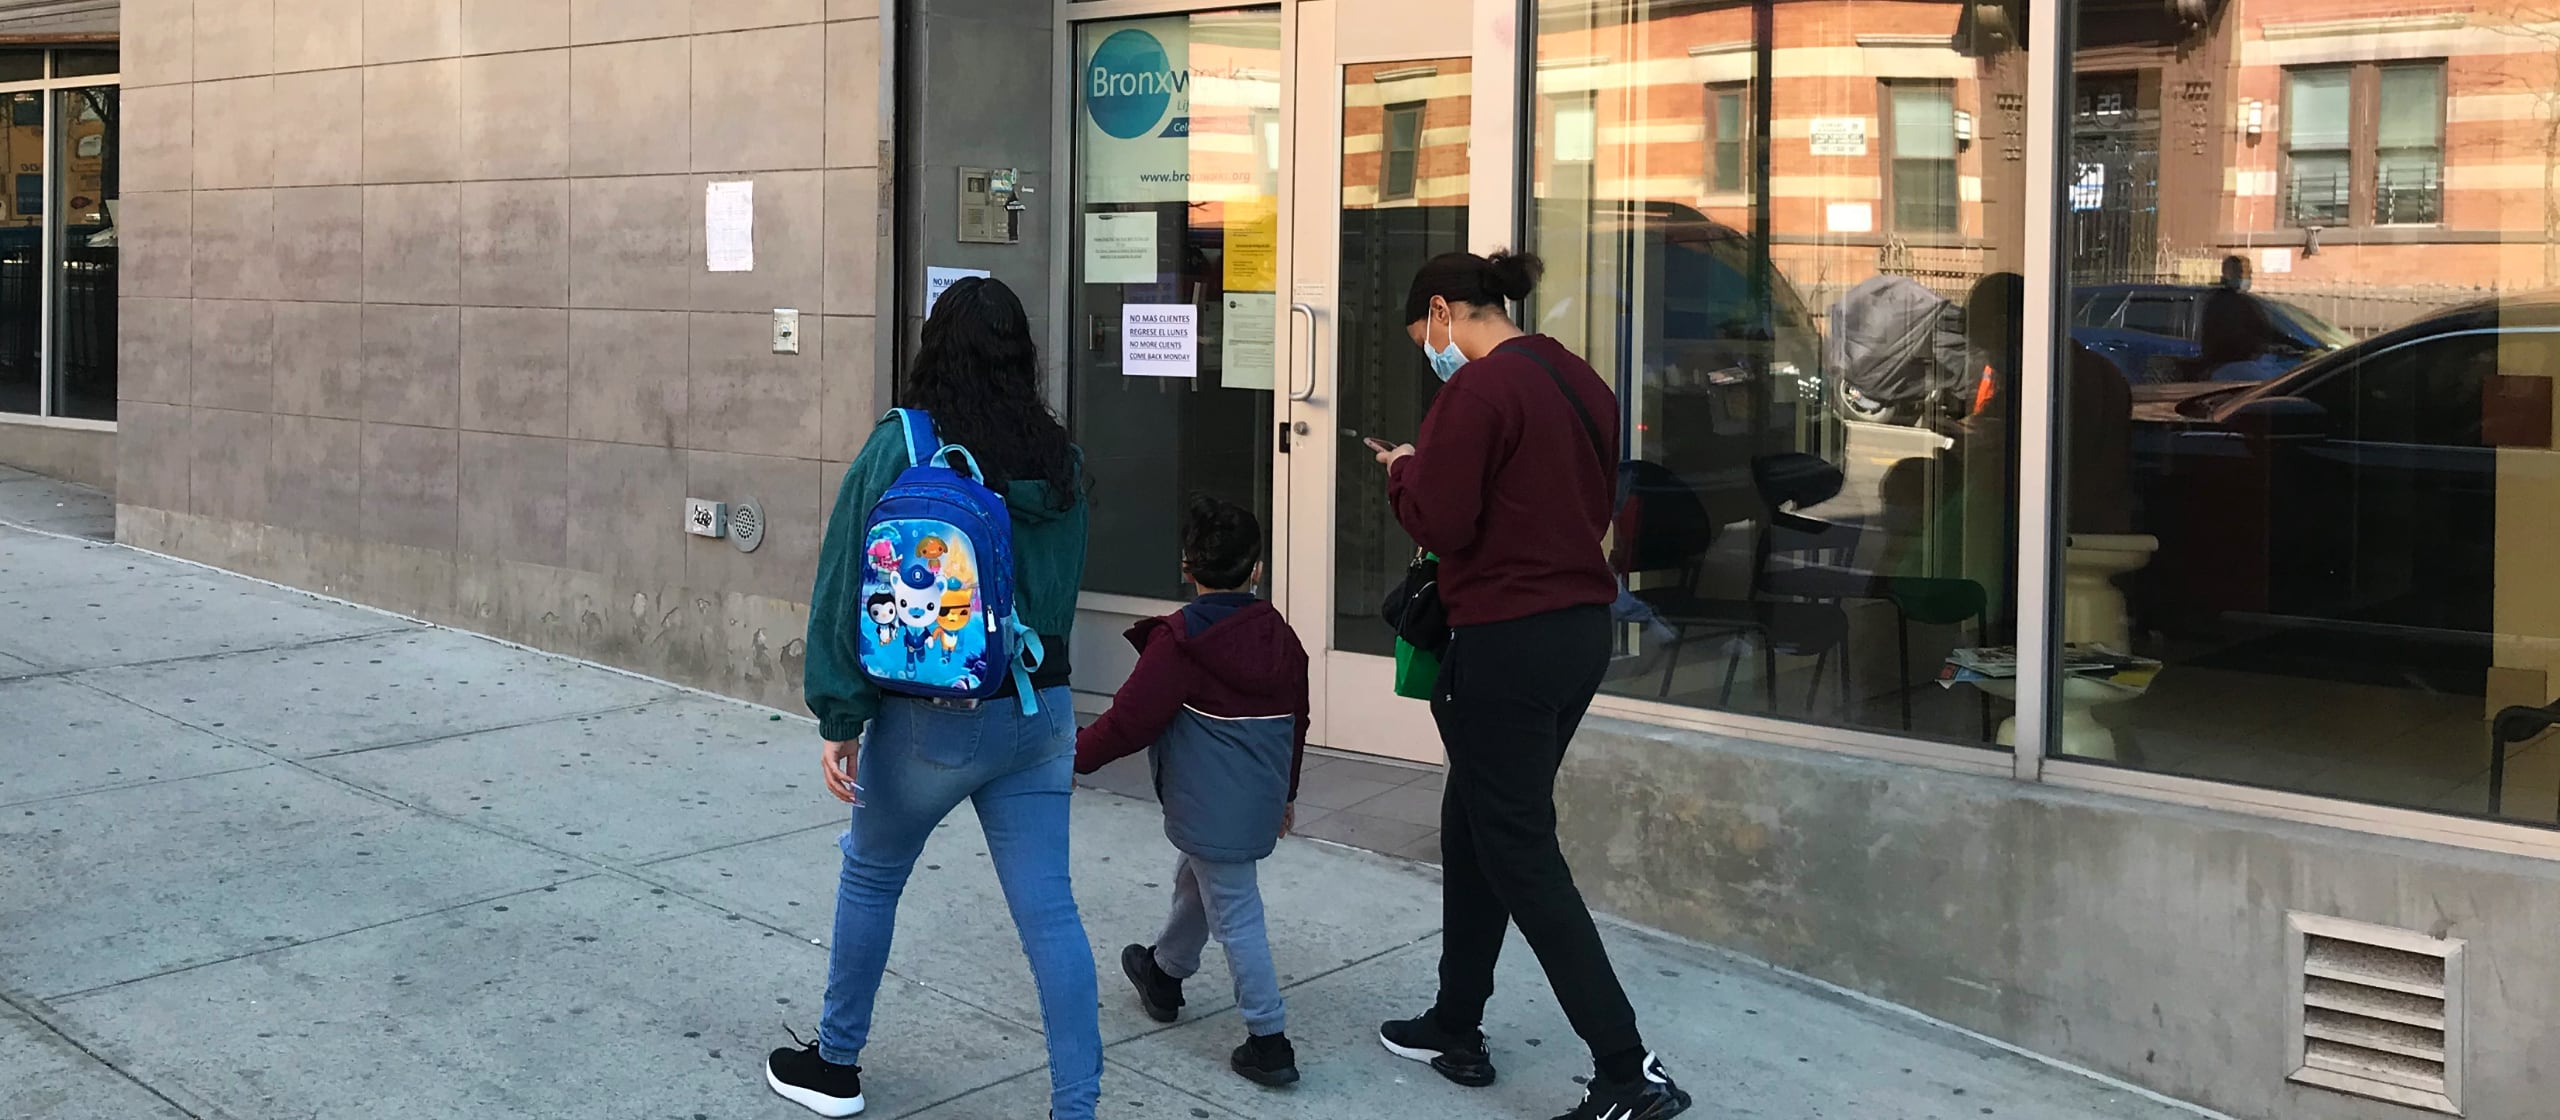 Two people talking down the street with a kid in the middle while passing a BronxWorks office